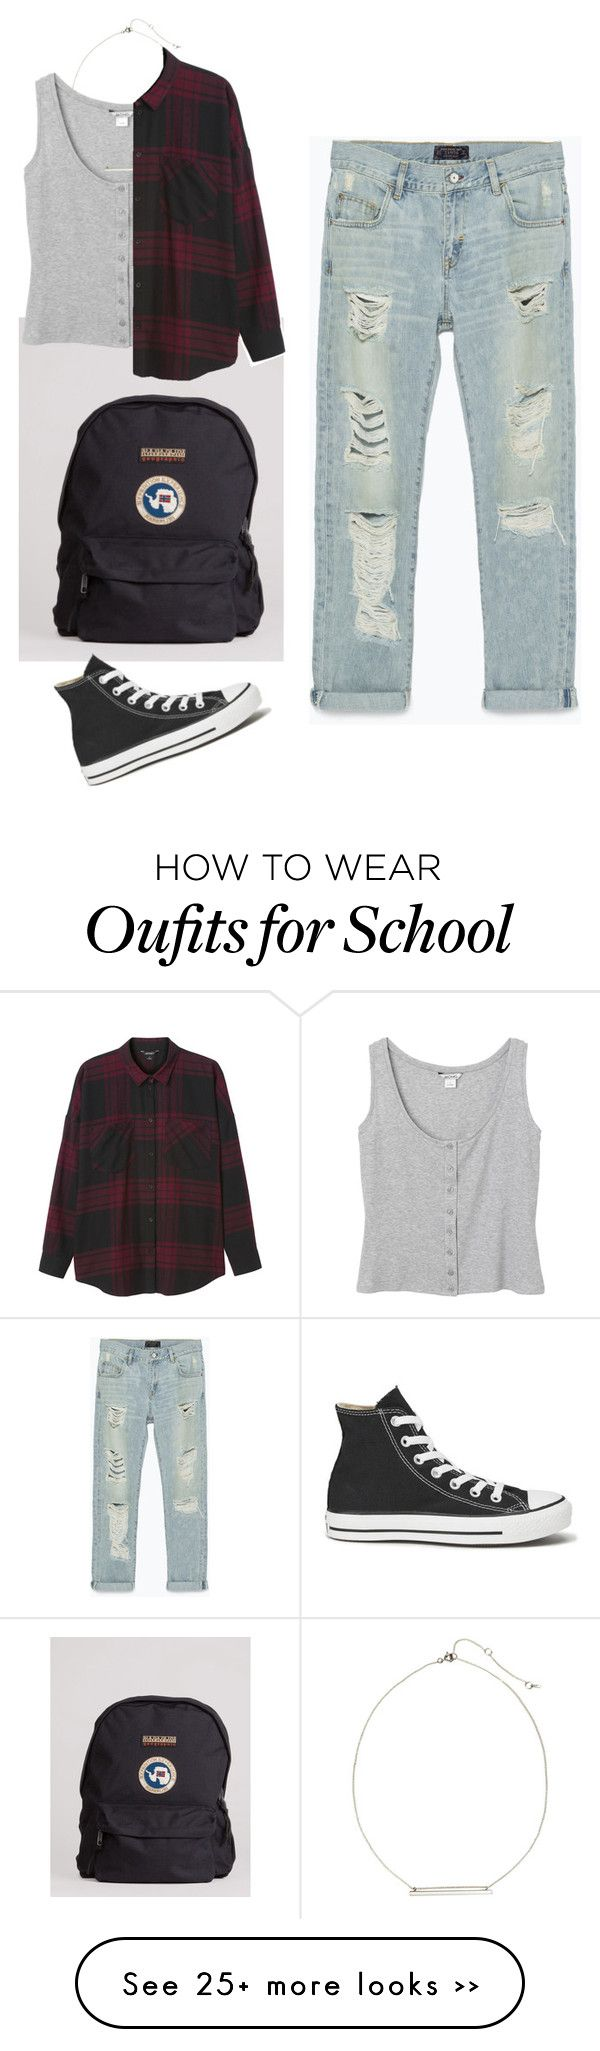 """""""Back to school"""" by laila0099 on Polyvore featuring Napapijri, Zara, Monki, H&M and Converse"""